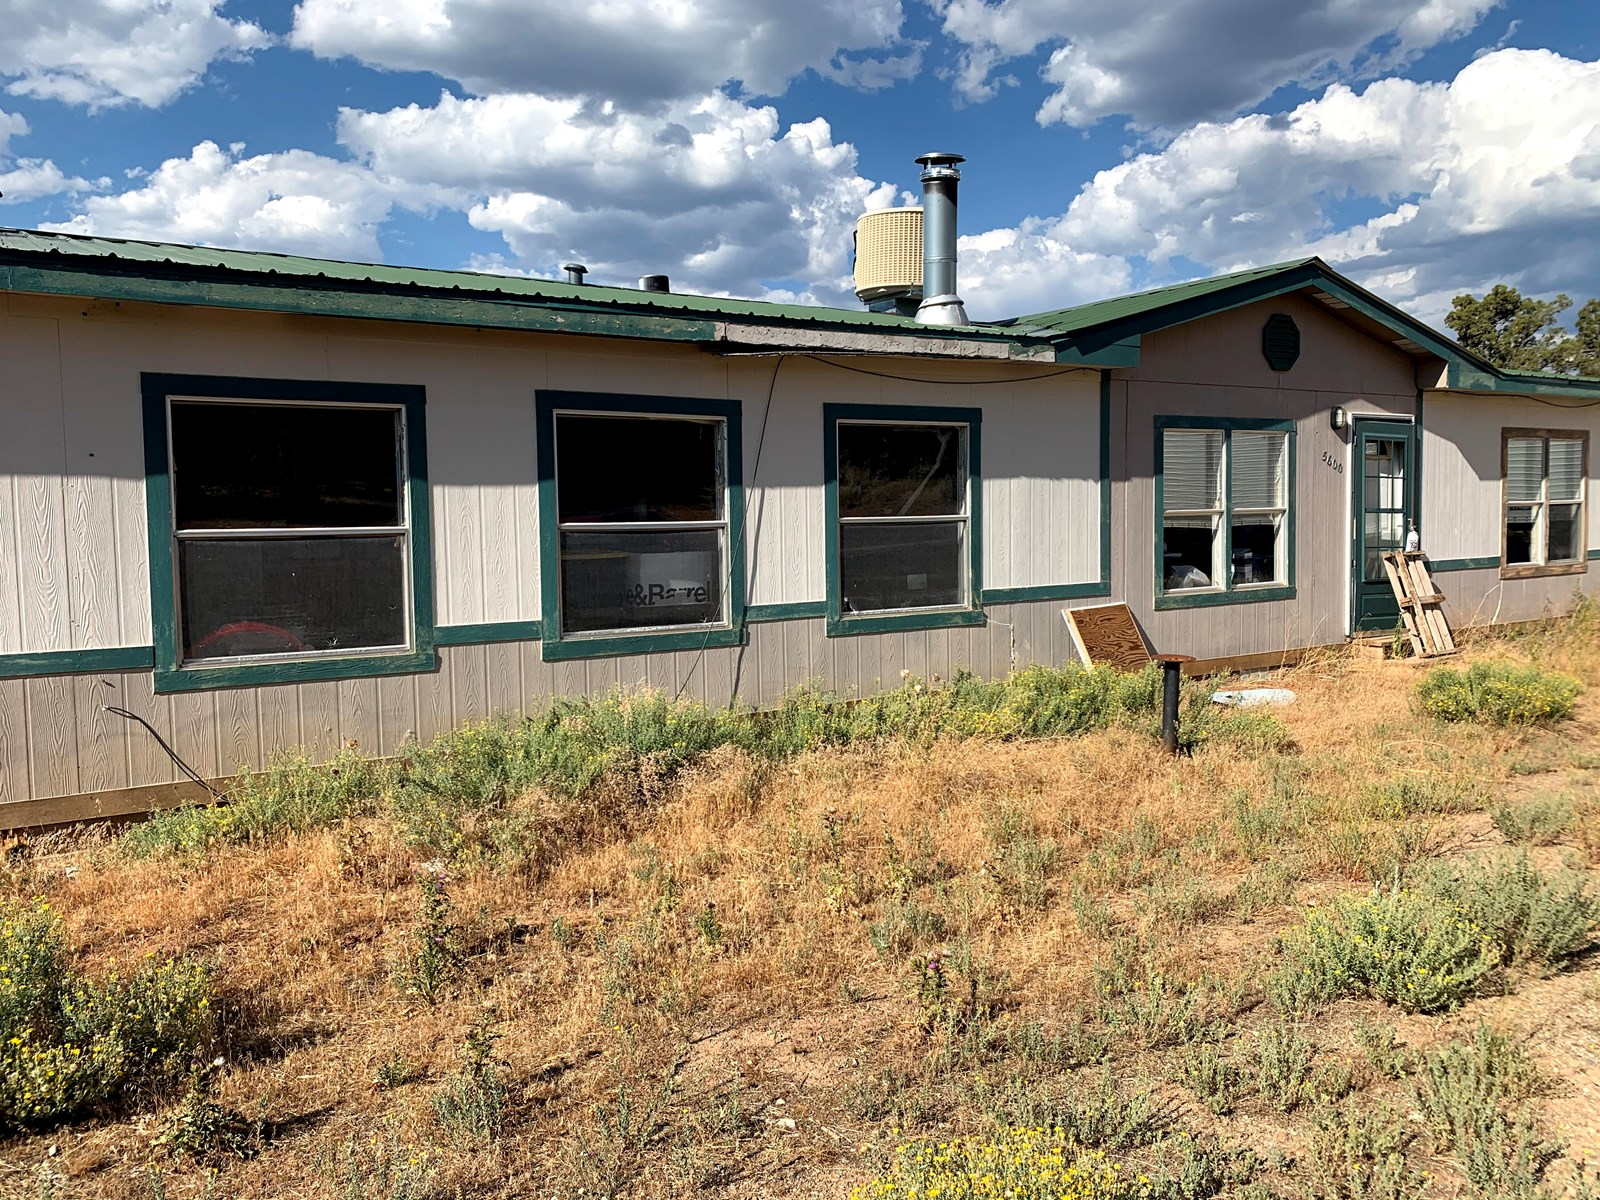 3 BR/2BA home with 2 cabins on 58 acres in Southwest CO